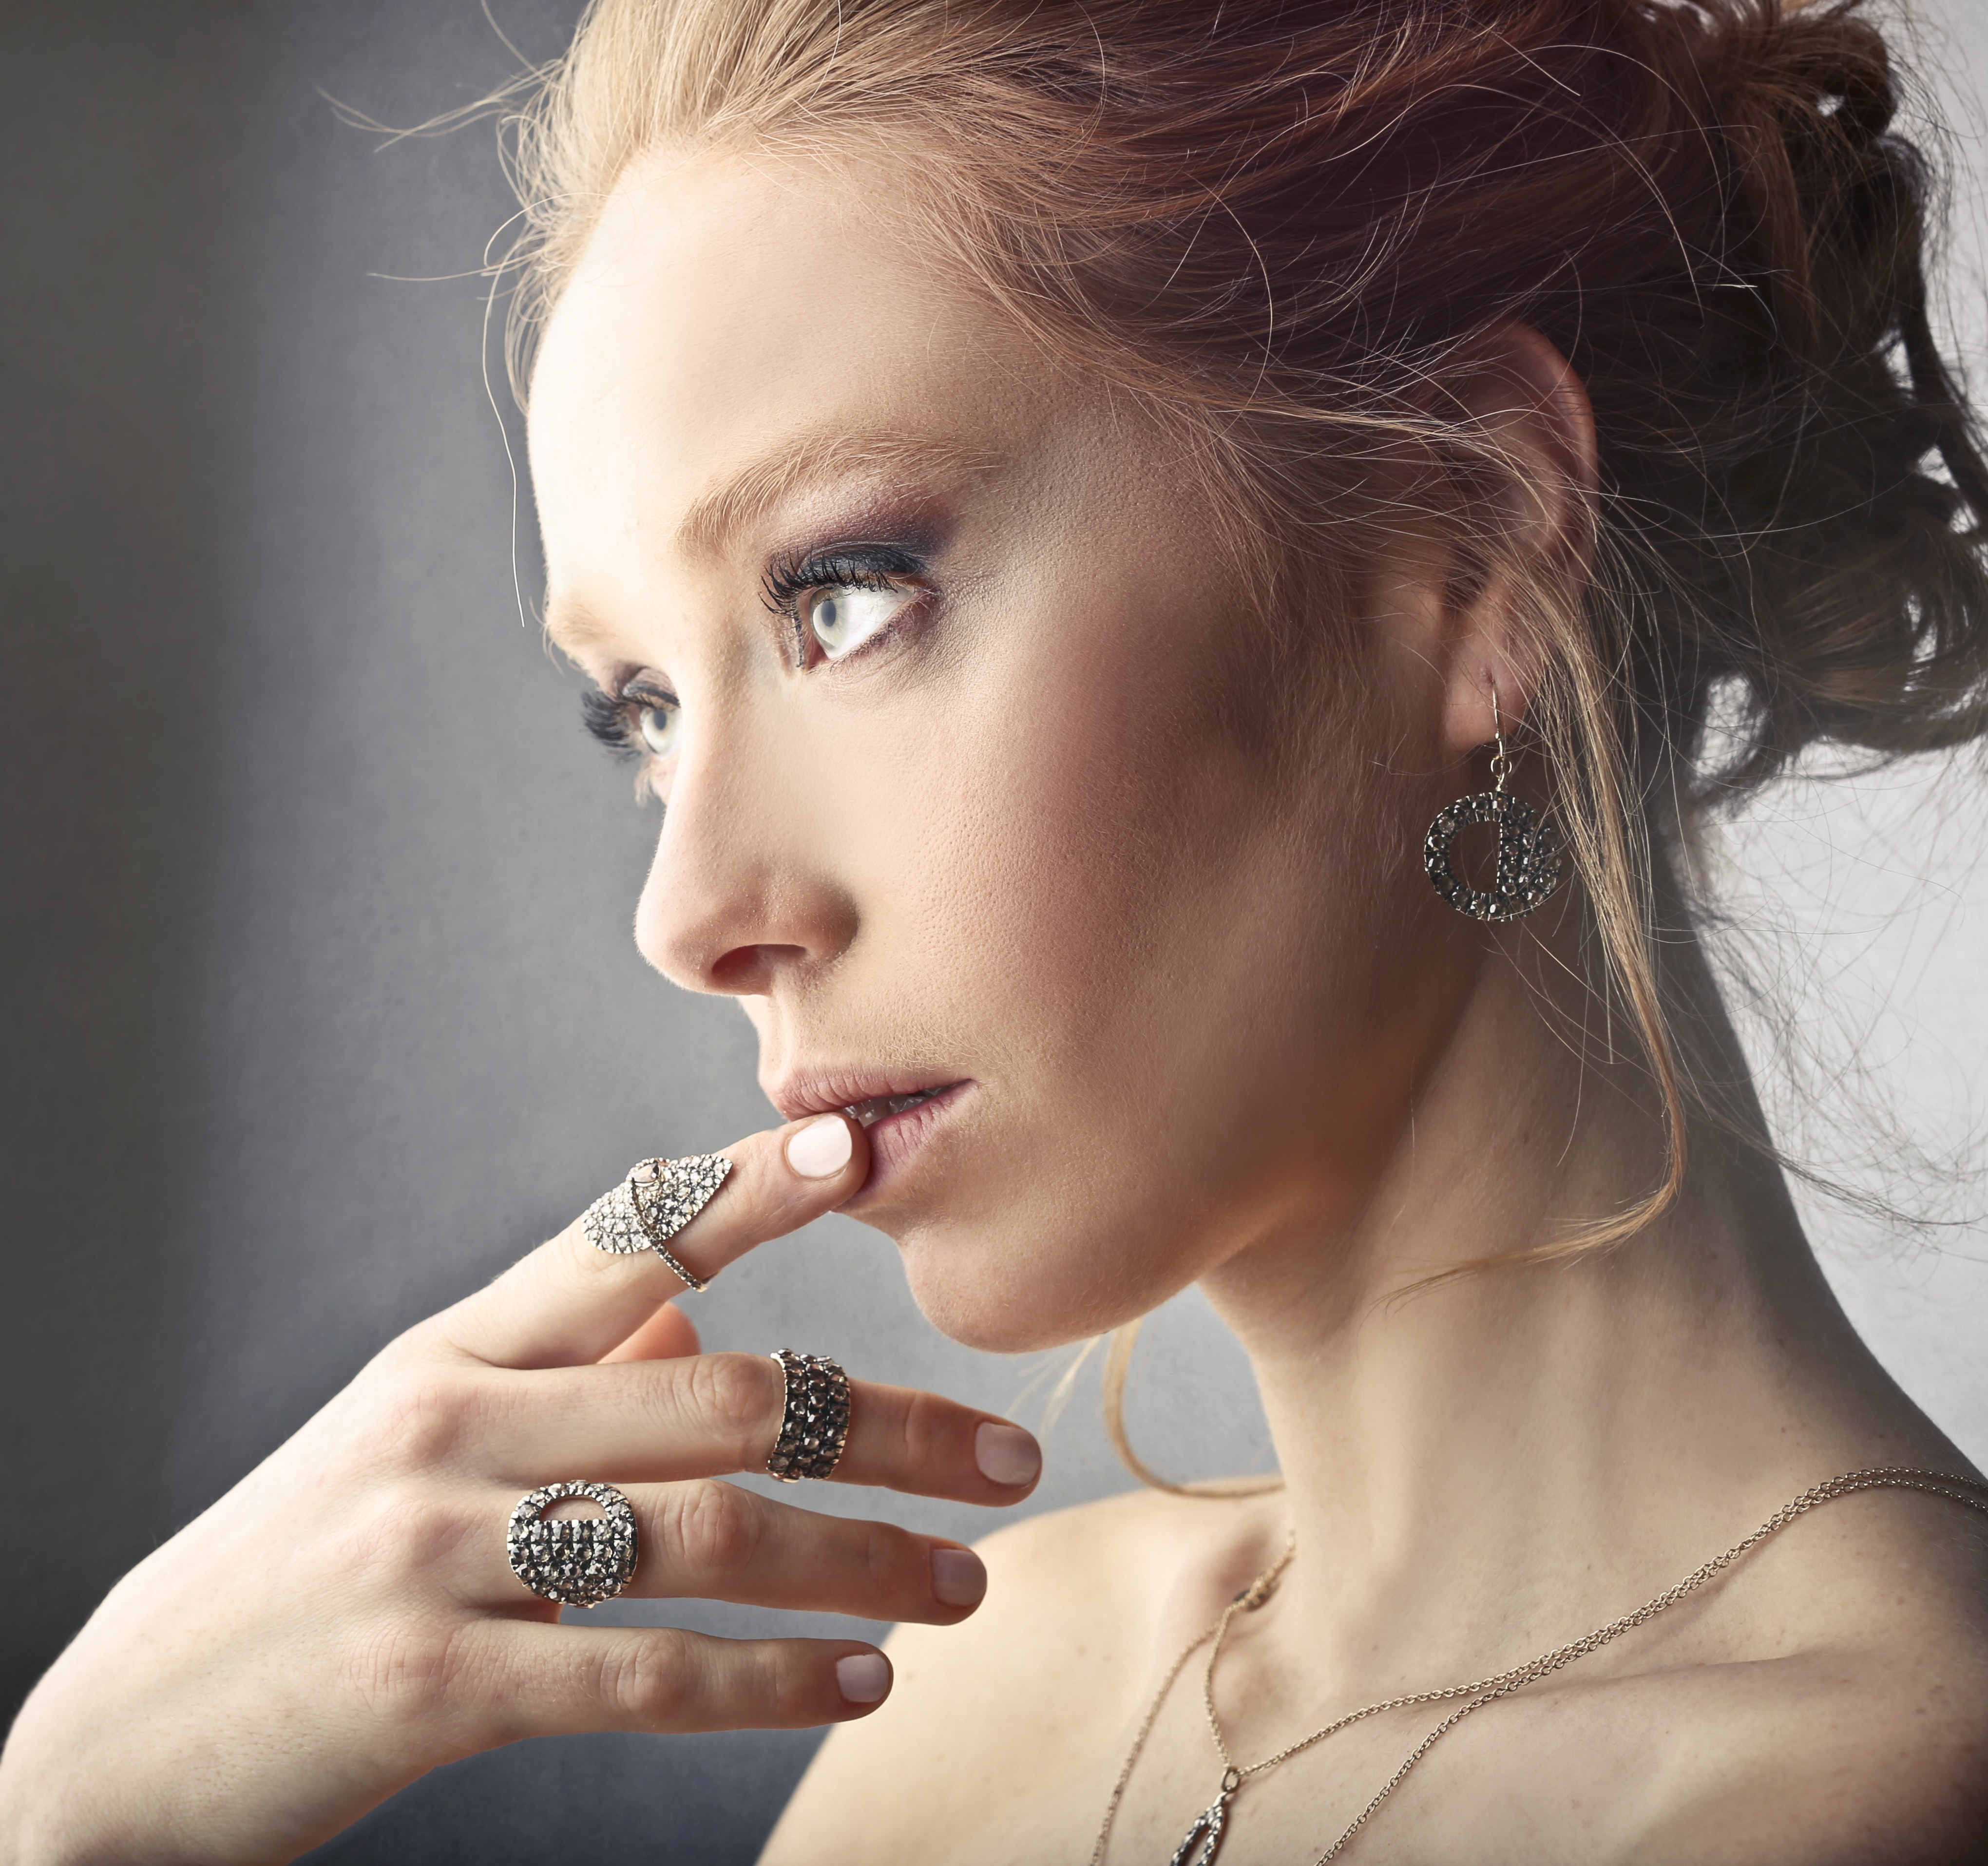 Woman Wearing Rings and Earrings, Attractive, Pretty, Necklace, Nude, HQ Photo